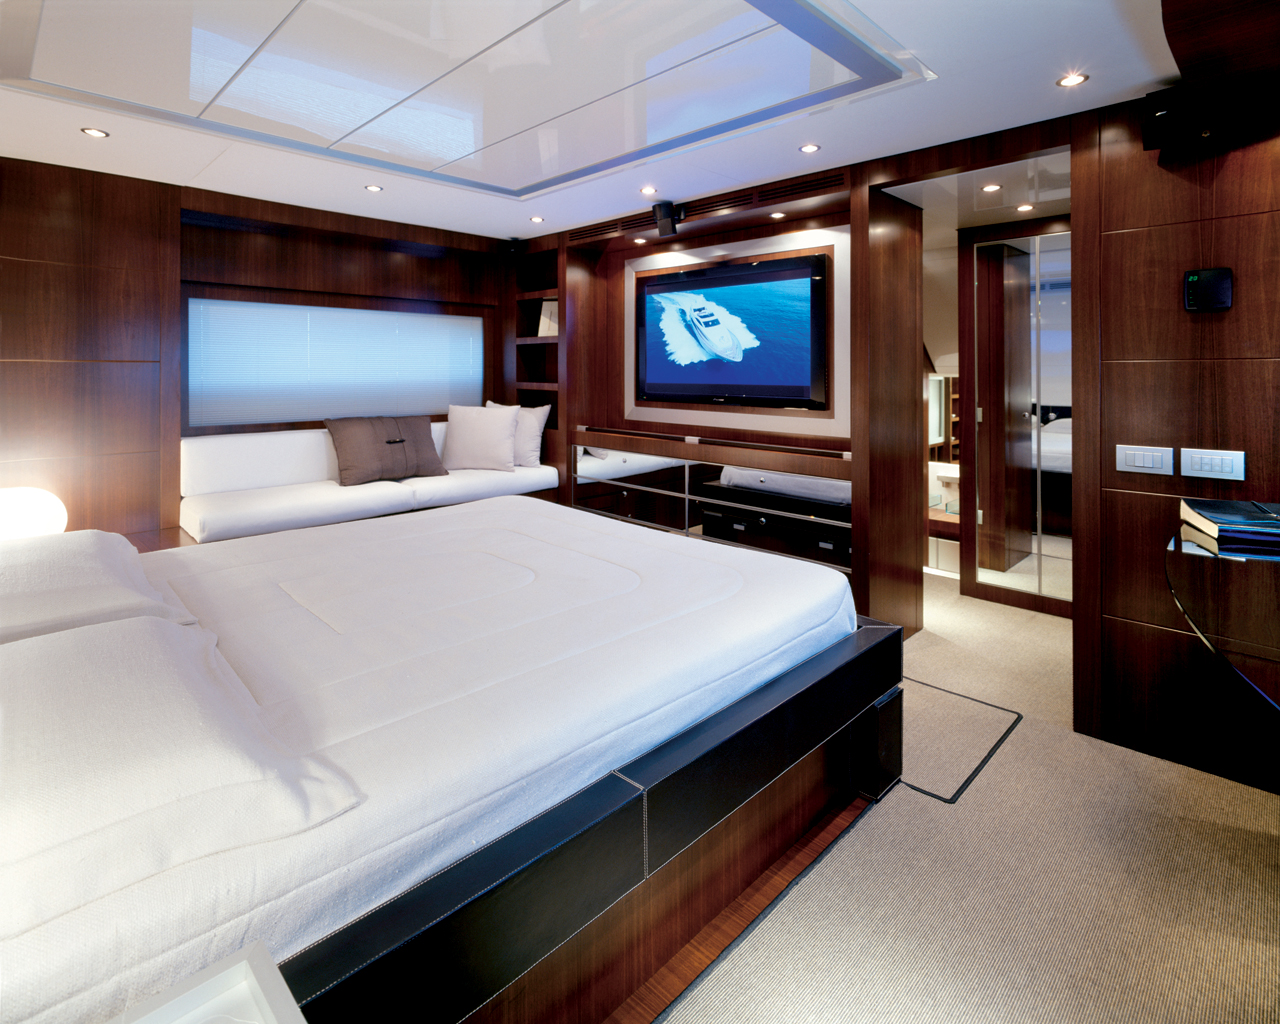 Yacht bedroom interior design interior design ideas Photos of bedrooms interior design